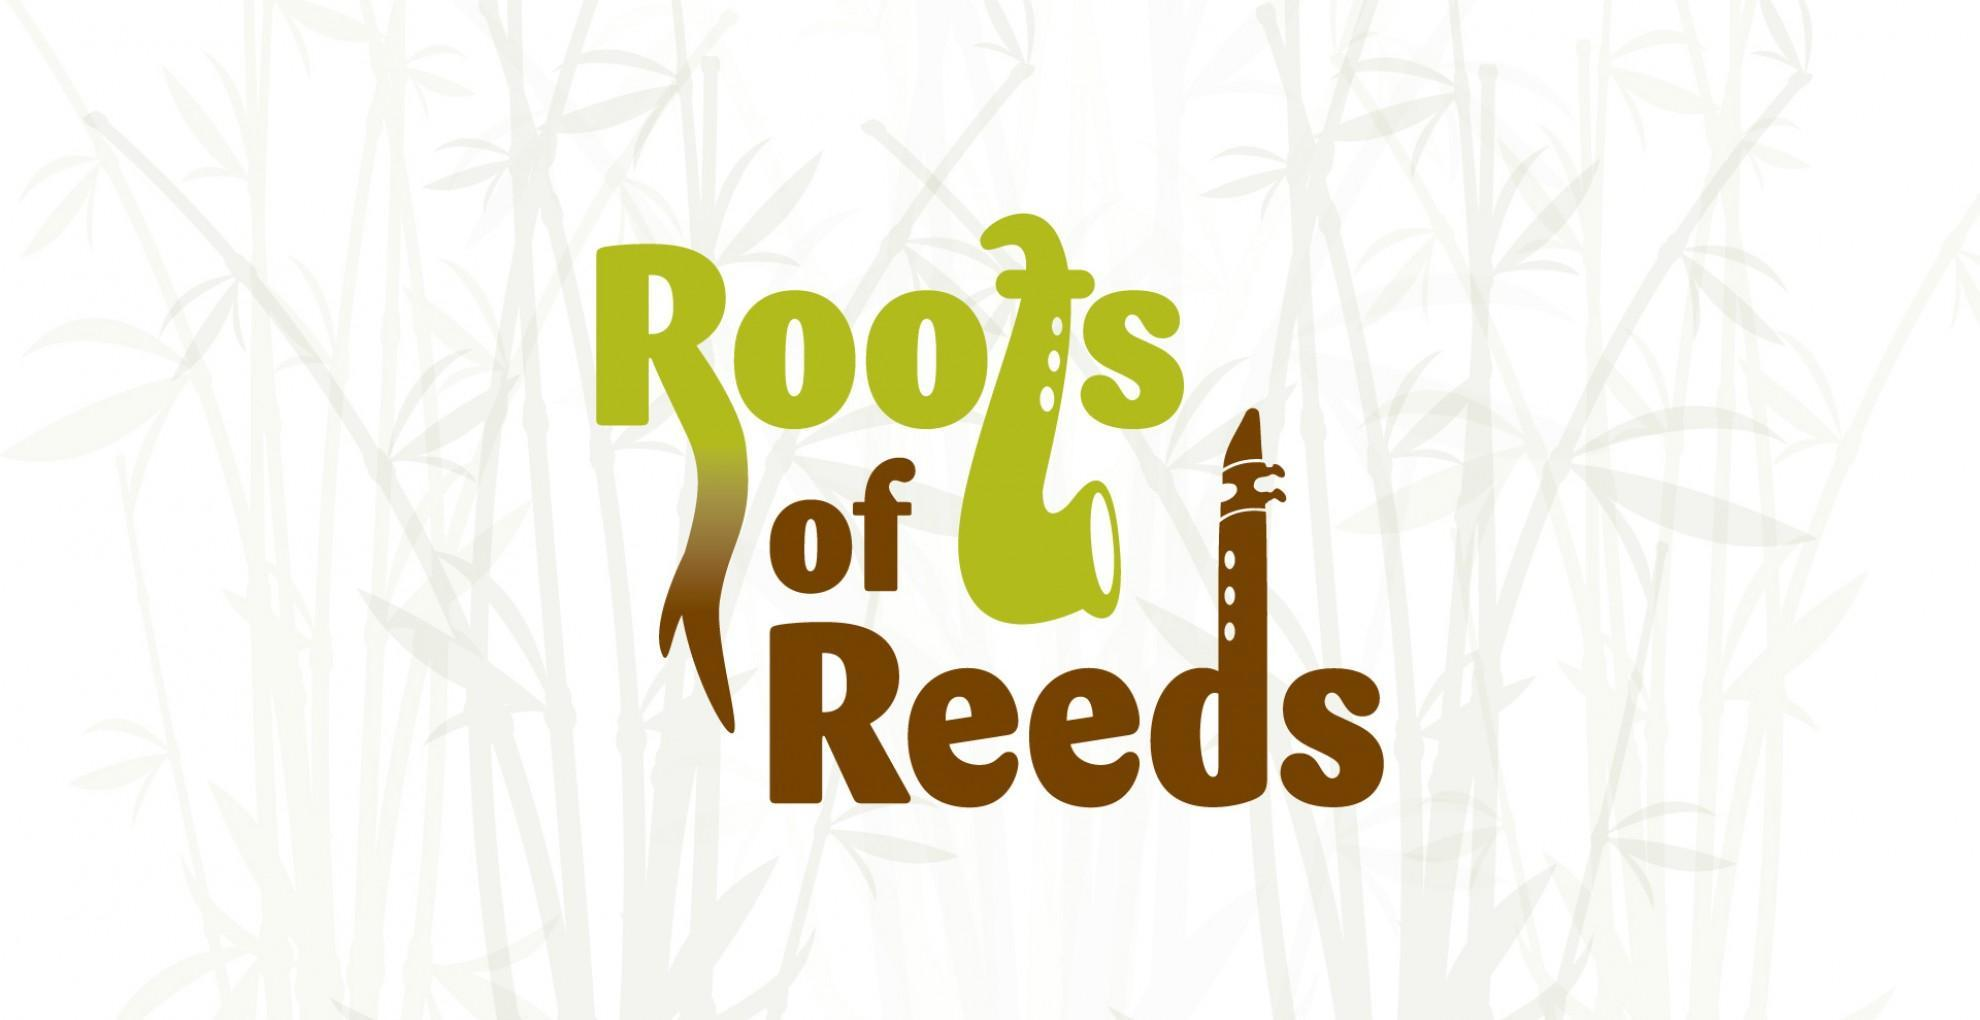 The Roots of Reeds